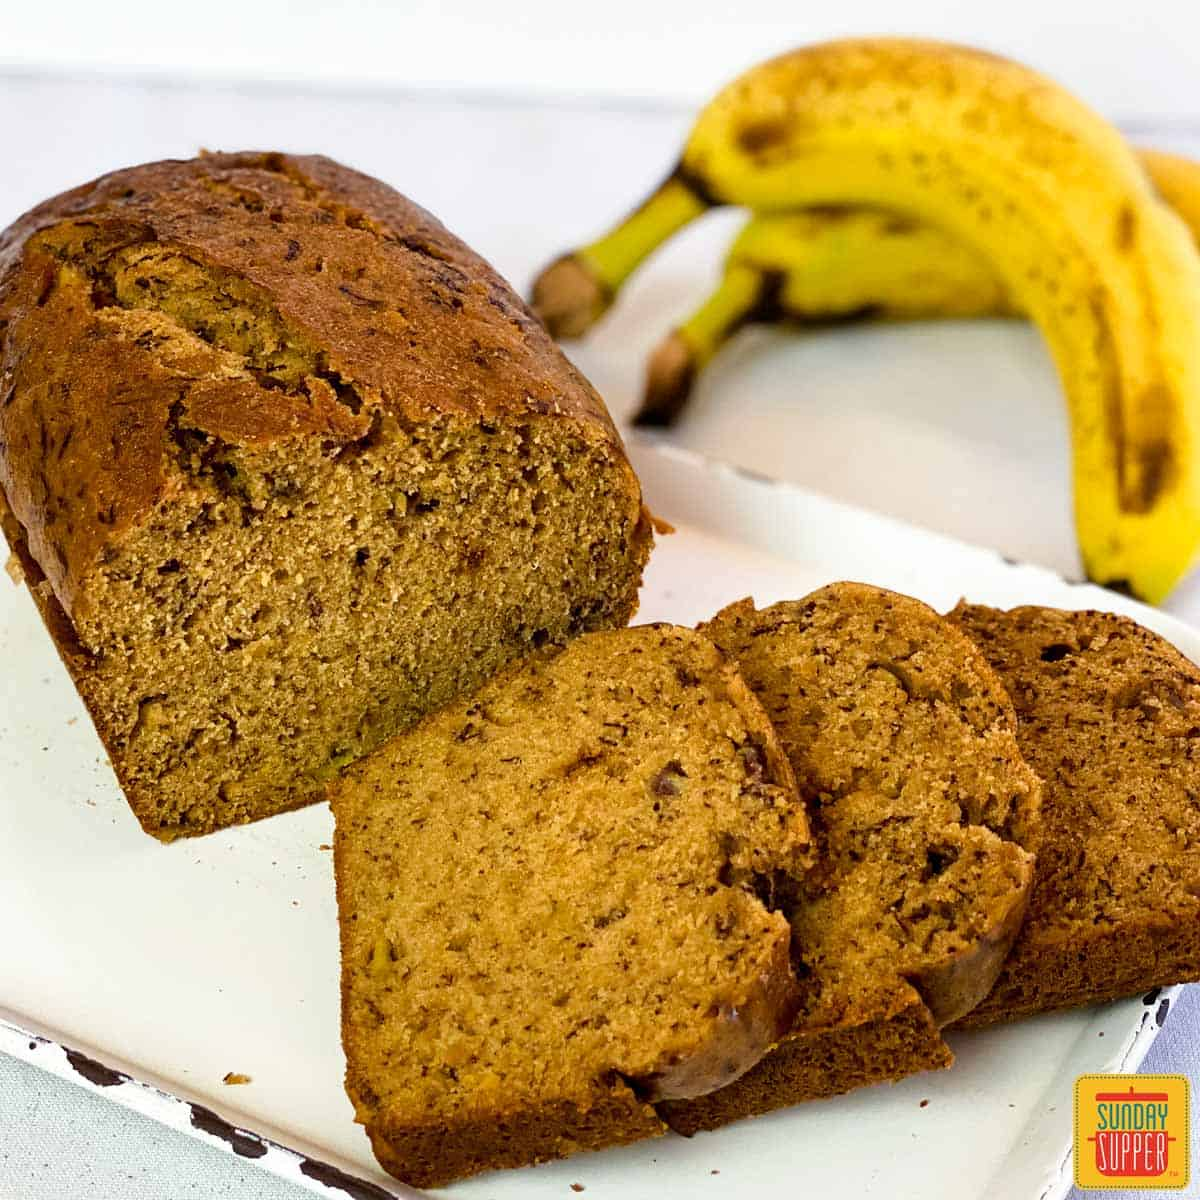 Three slices of banana bread next to a loaf of Instant Pot Banana Bread on a white platter with two bananas in the background